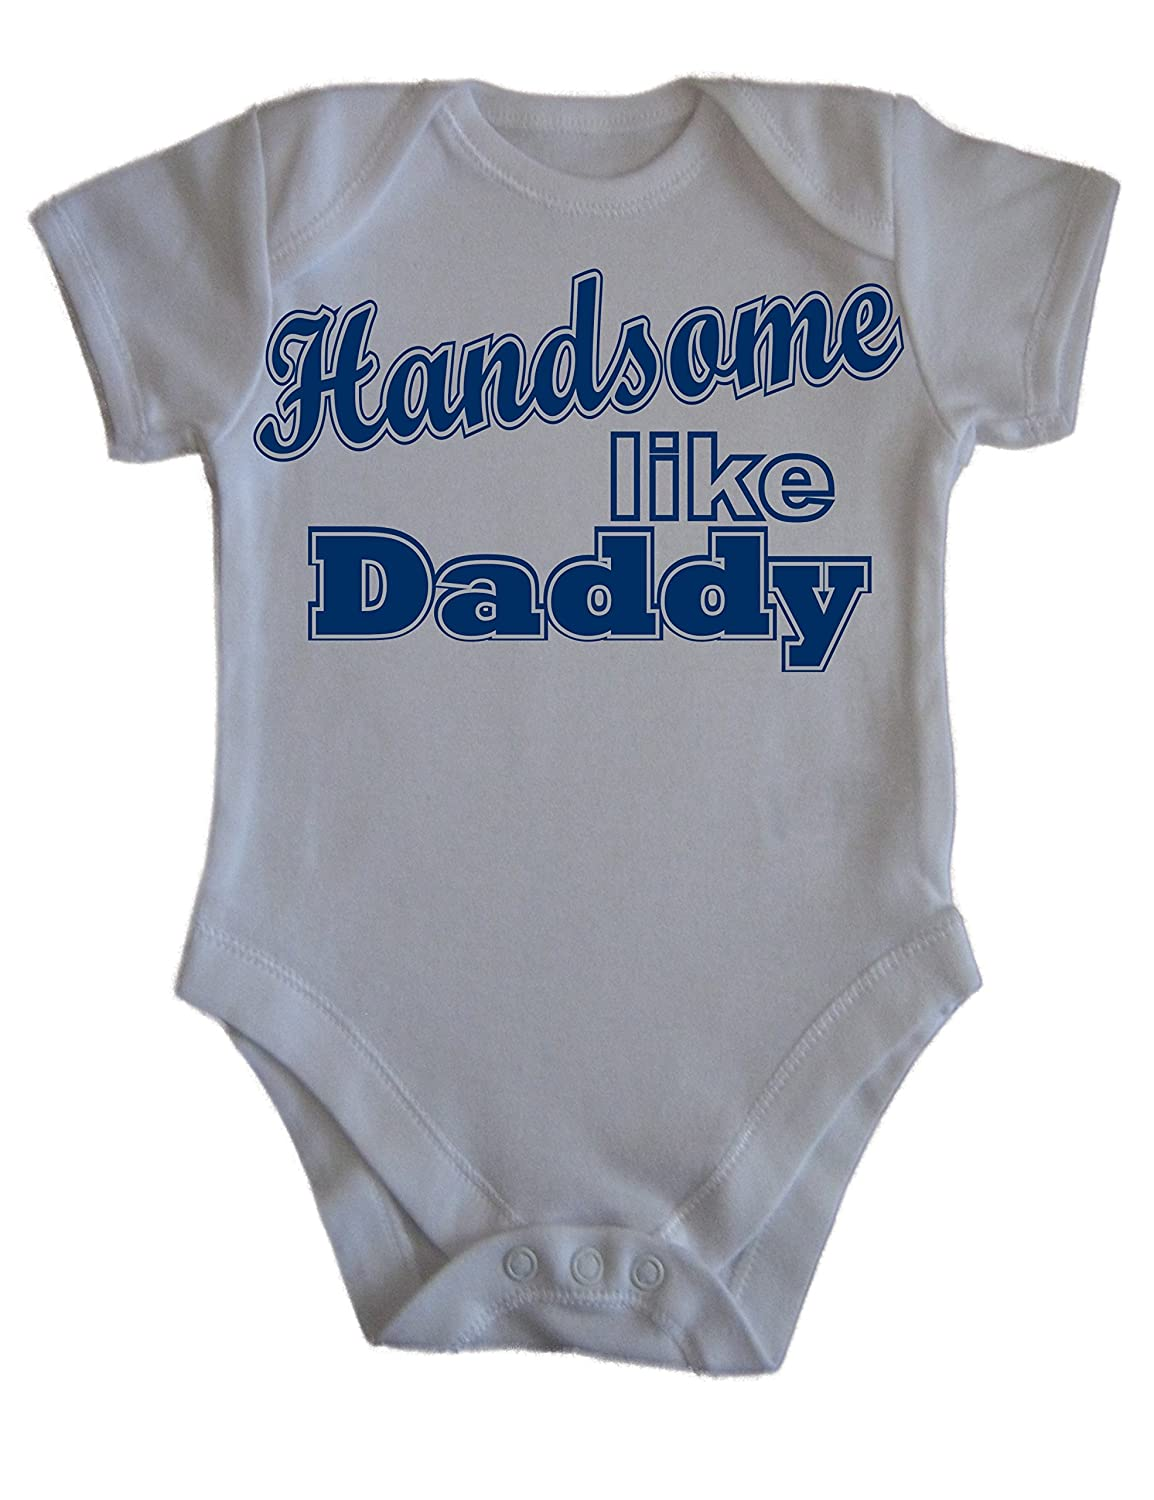 Baby Boys Handsome Like Daddy Print Babies Vest Onesie All In One Newborn-24mths (3-6 months) Kidzone